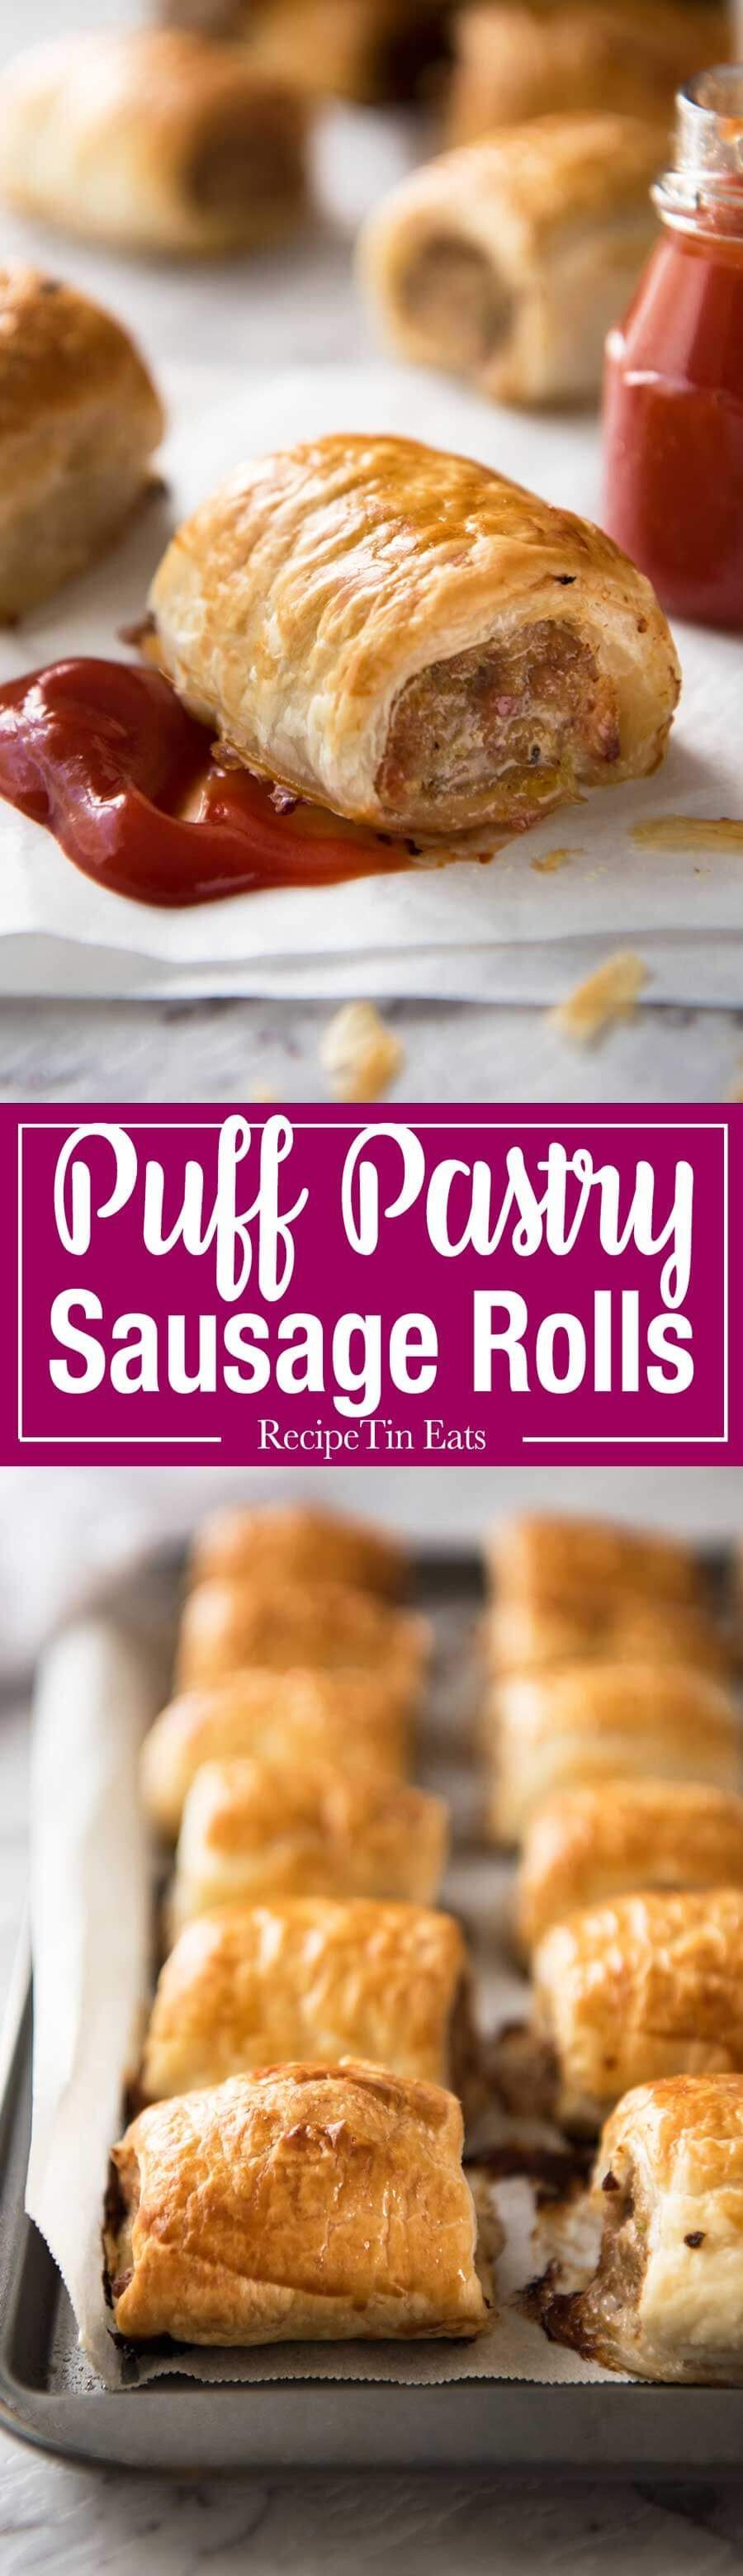 Sausage Rolls The famous Australian Sausage Rolls! As The New York Times said, they're like Pigs in Blankets, but BETTER!!! Easy to make, a homemade pork mince filling wrapped in puff pastry. The famous Australian Sausage Rolls! As The New York Times said, they're like Pigs in Blankets, but BETTER!!! Easy to make, a homemade pork mince filling ...